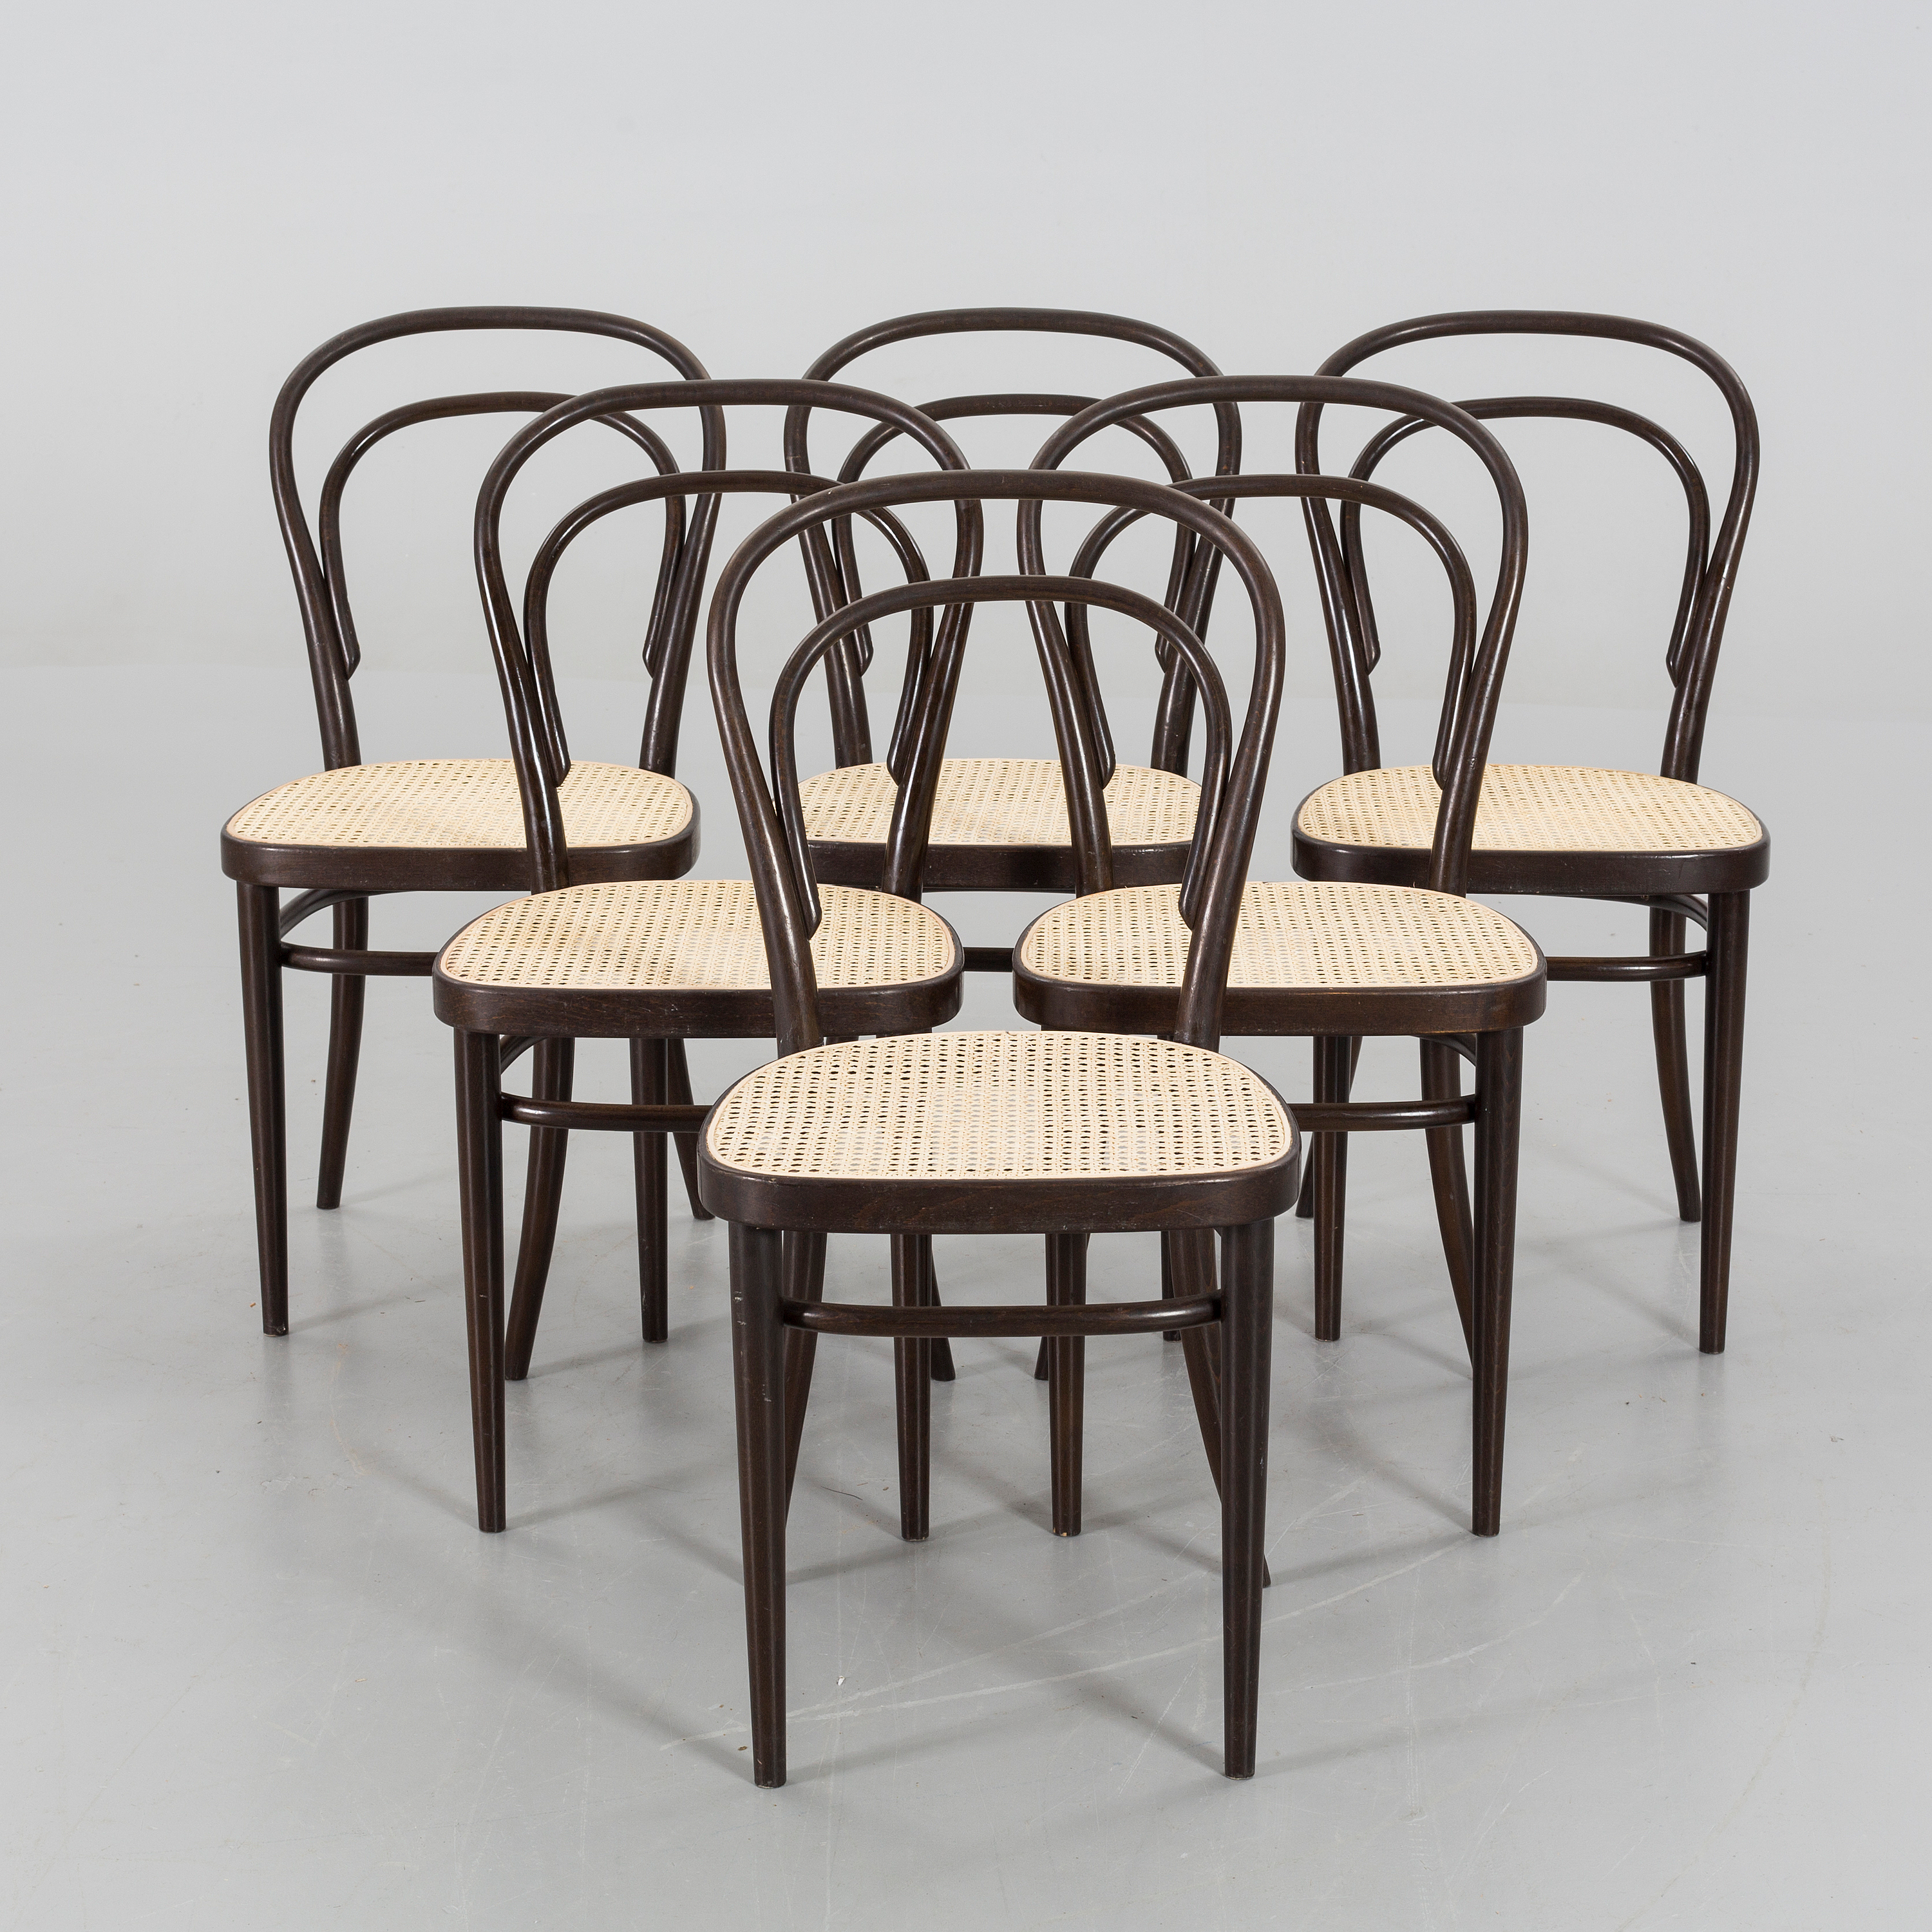 A SET OF 6 THONET BENTWOOD CHAIRS marked Thonet 78 Bukowskis